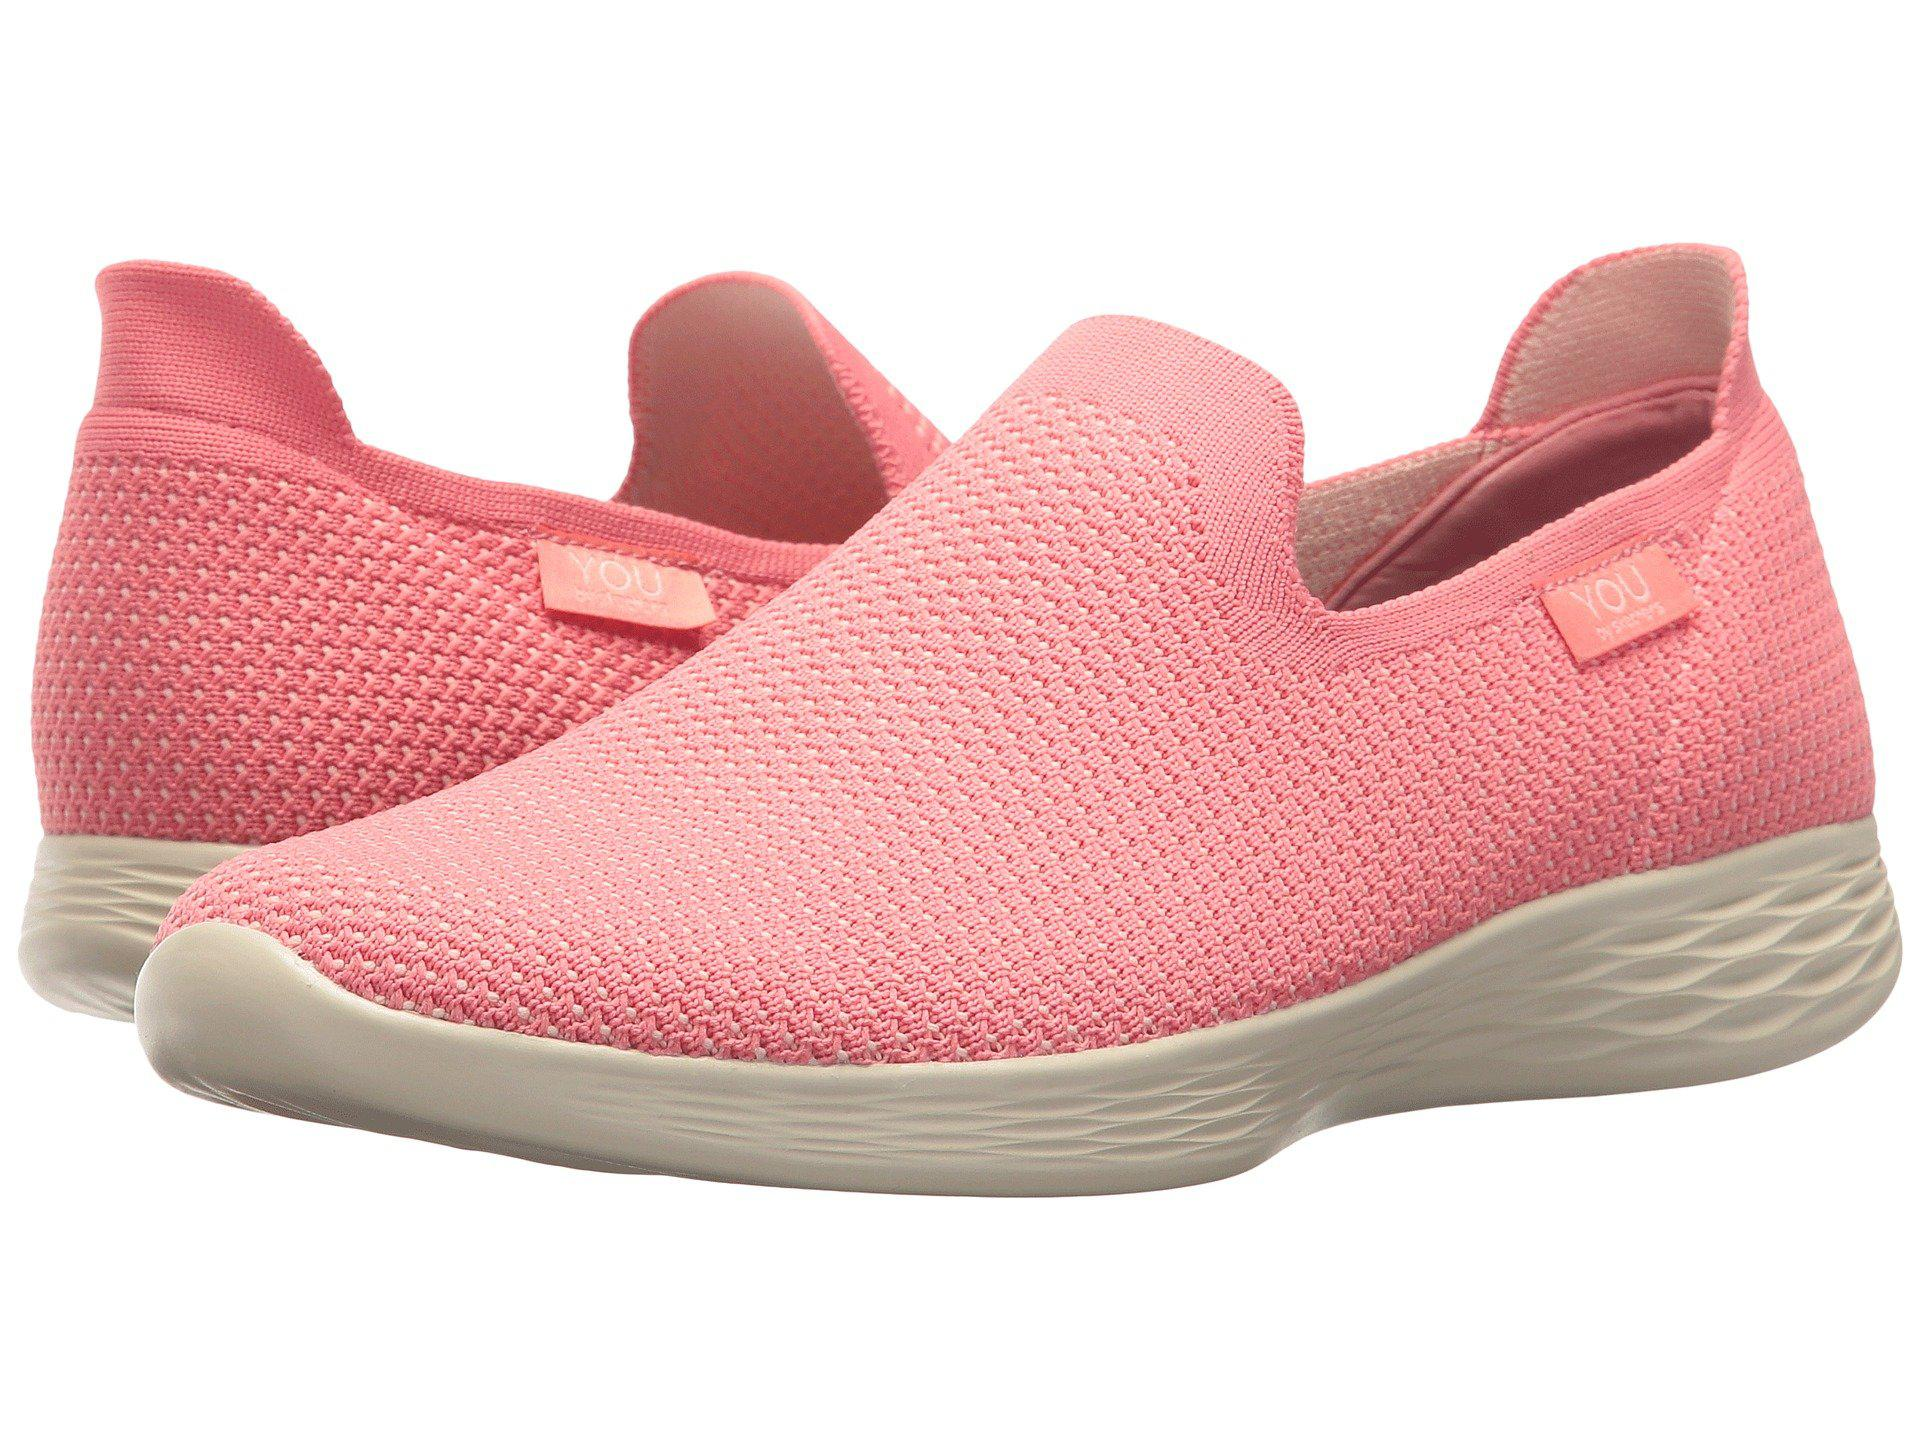 3d9a8bc8a6f3 Lyst - Skechers You - Zen (pink) Women s Shoes in Pink